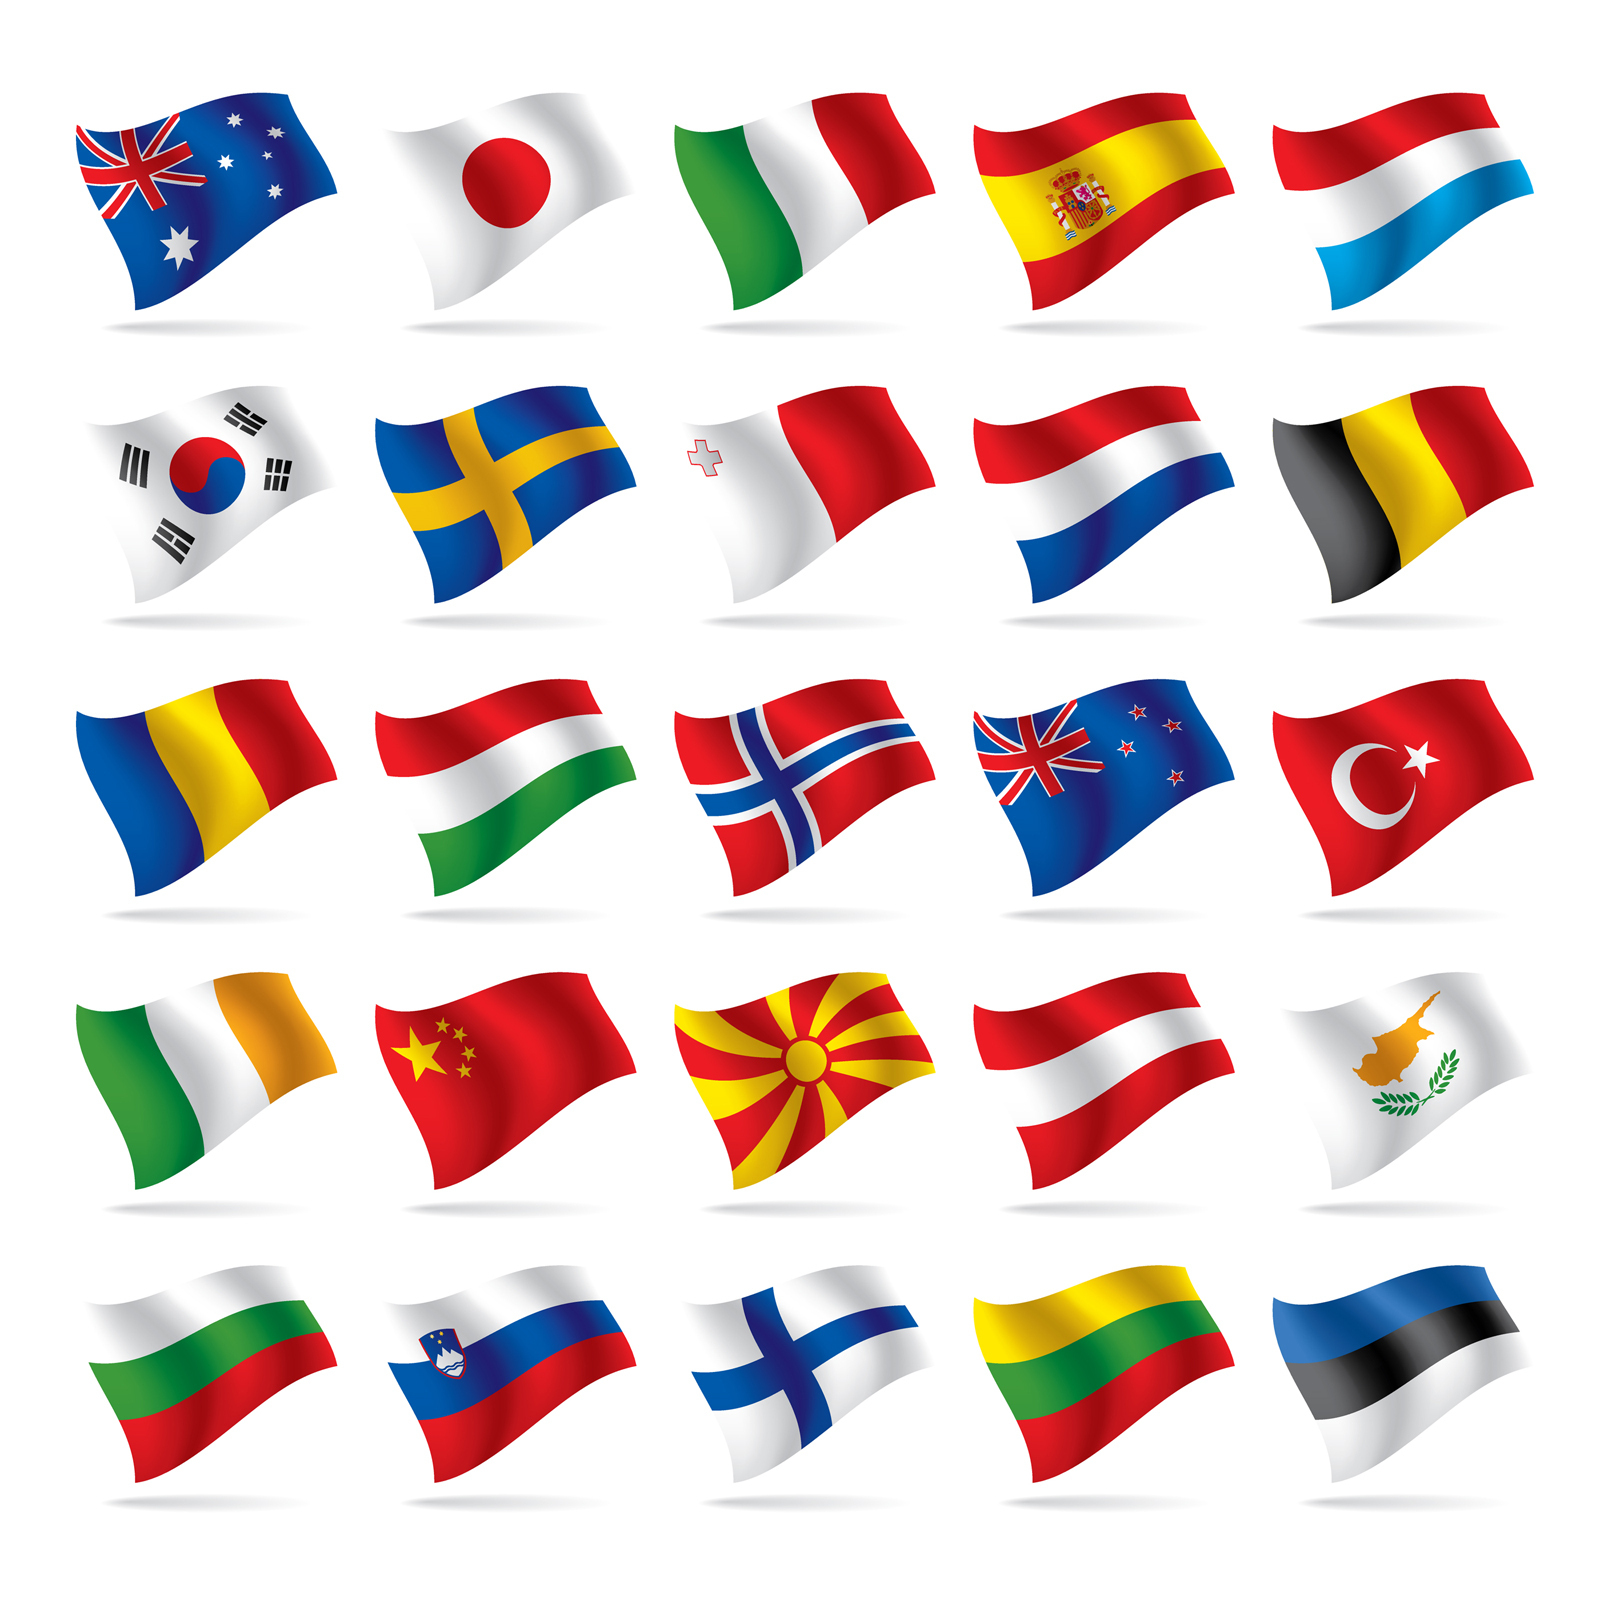 There's now iOS emoji for every national flag in the world - Vox